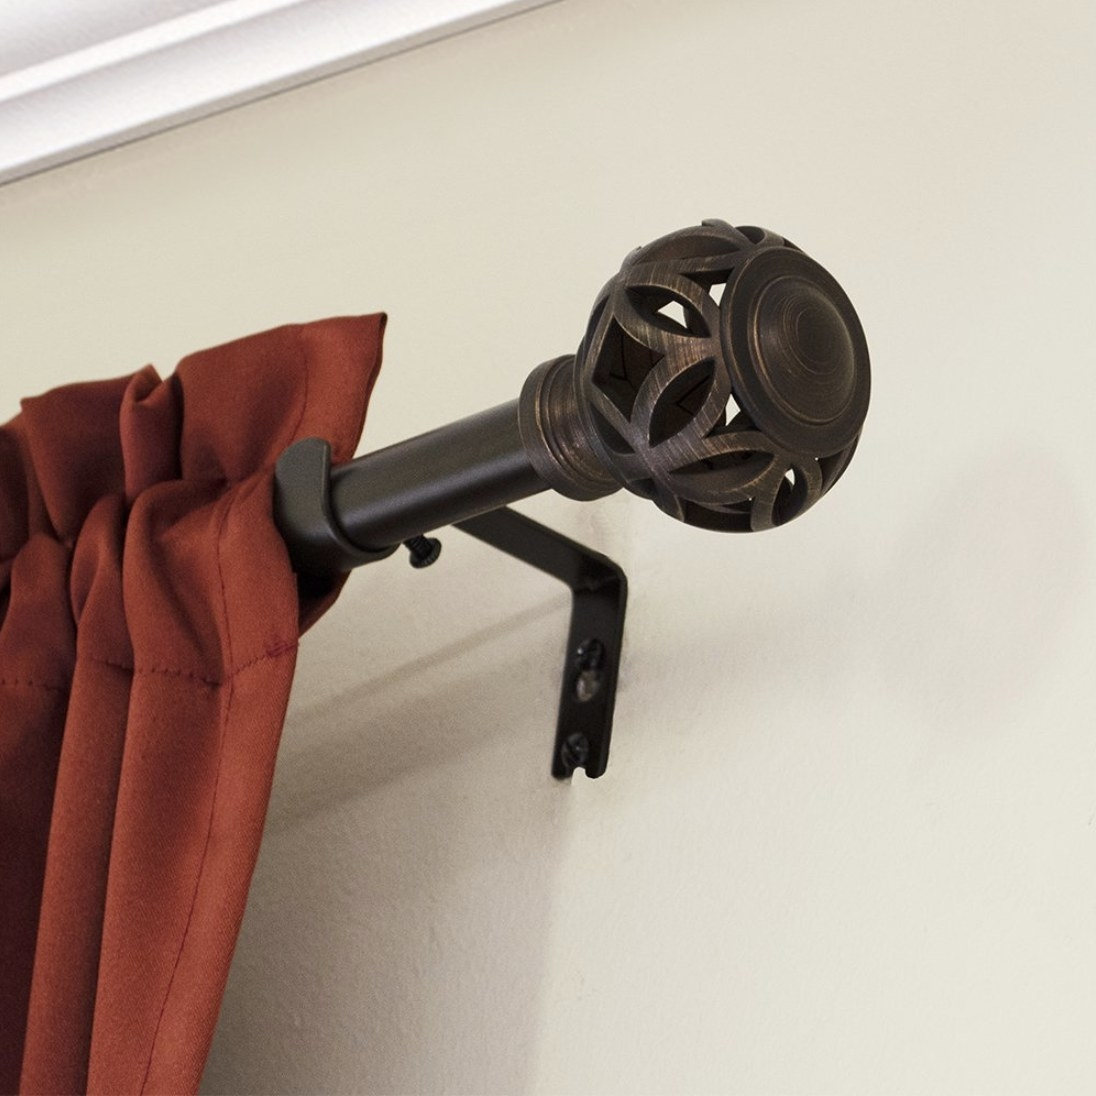 A corner of a mounted curtain rod showcasing the brushed nickel and detail on the end ball